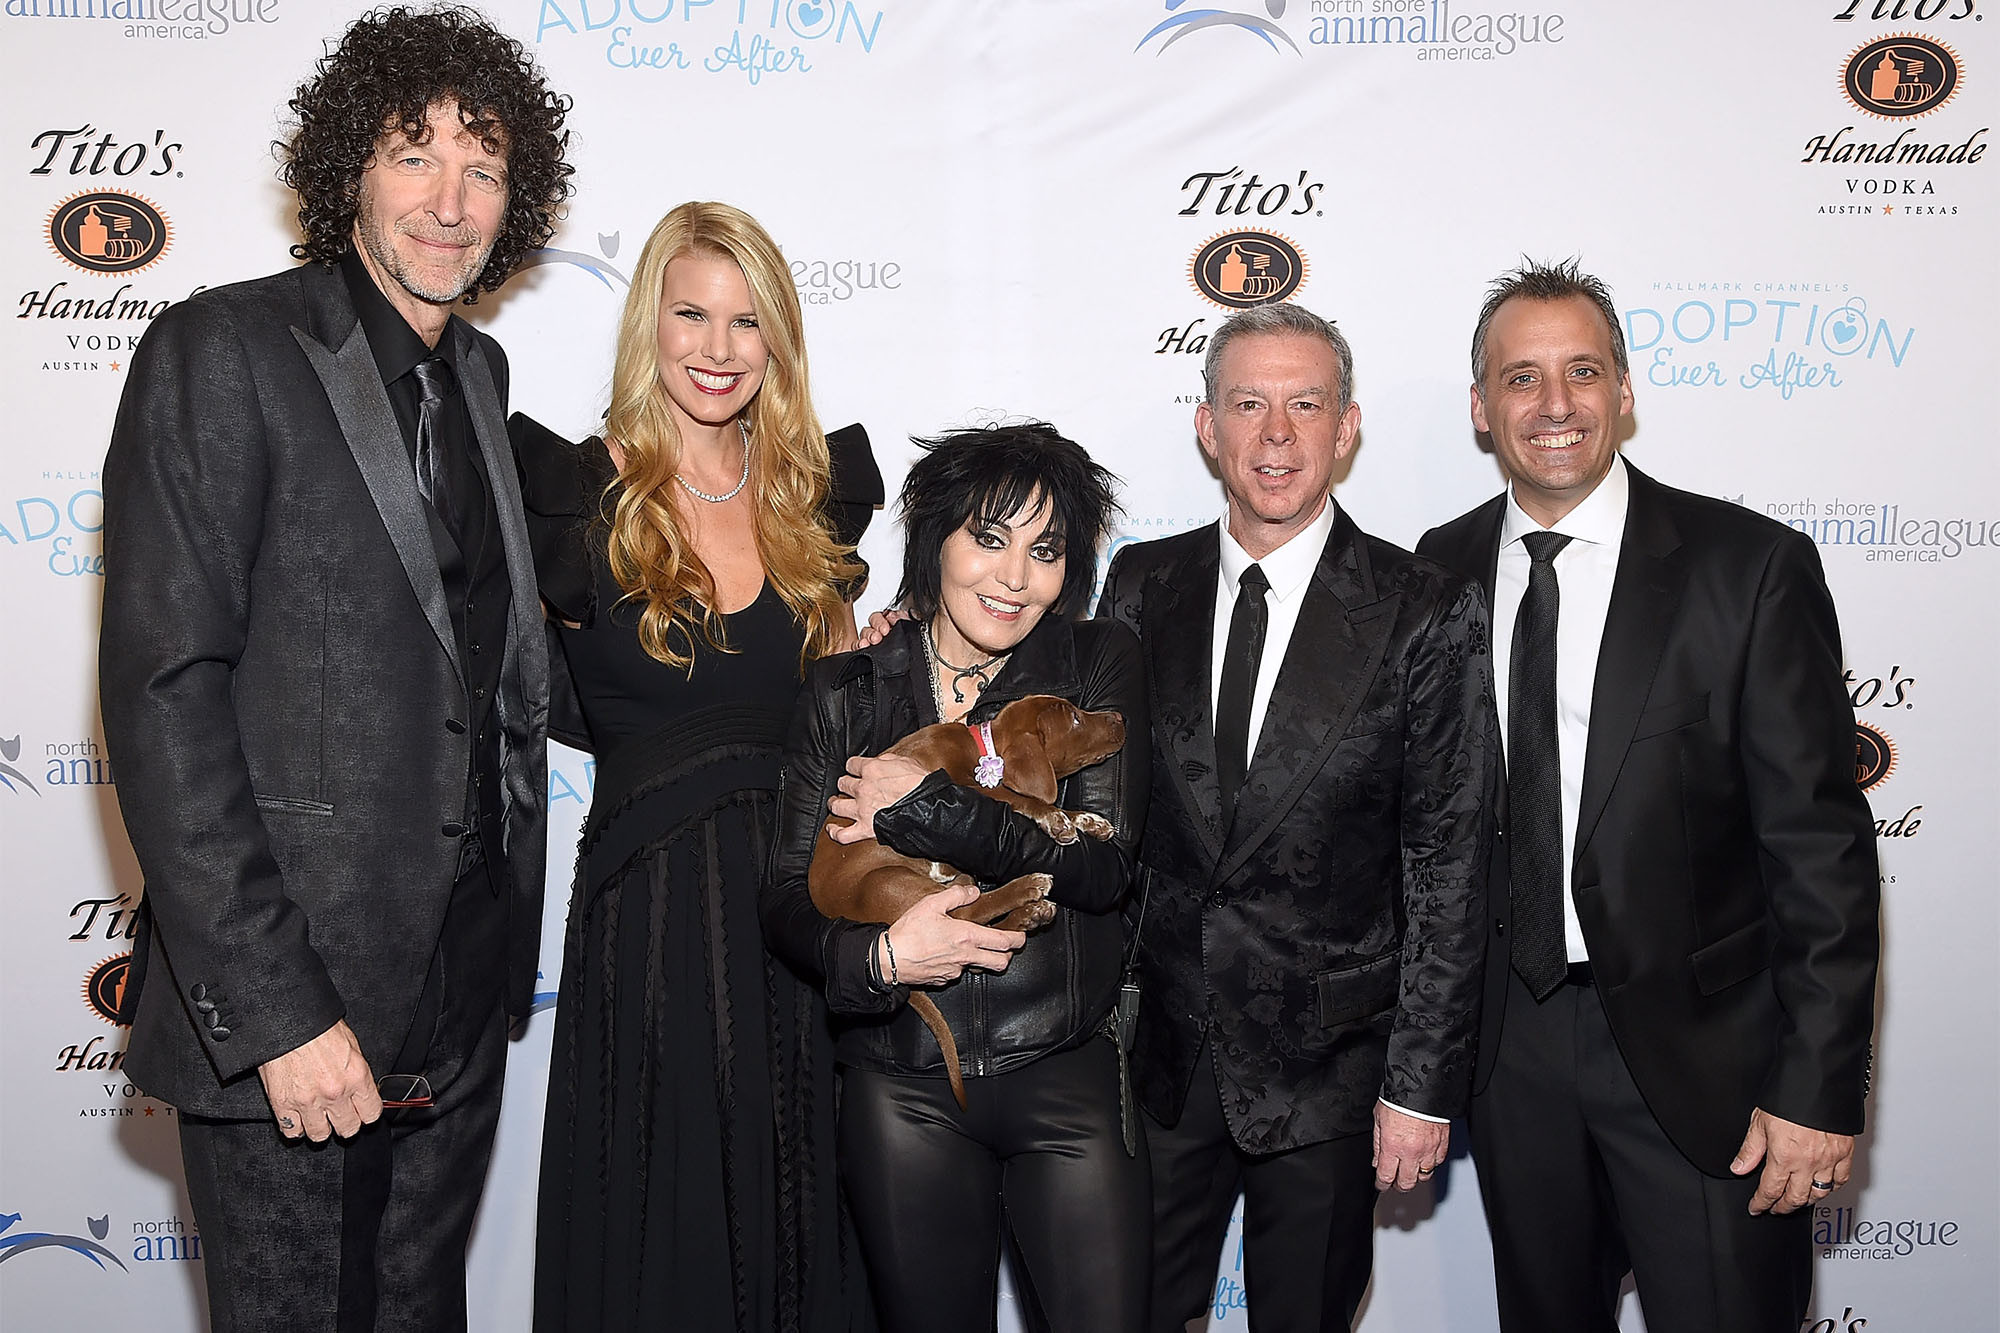 Elvis Duran honored to meet his idol Howard Stern